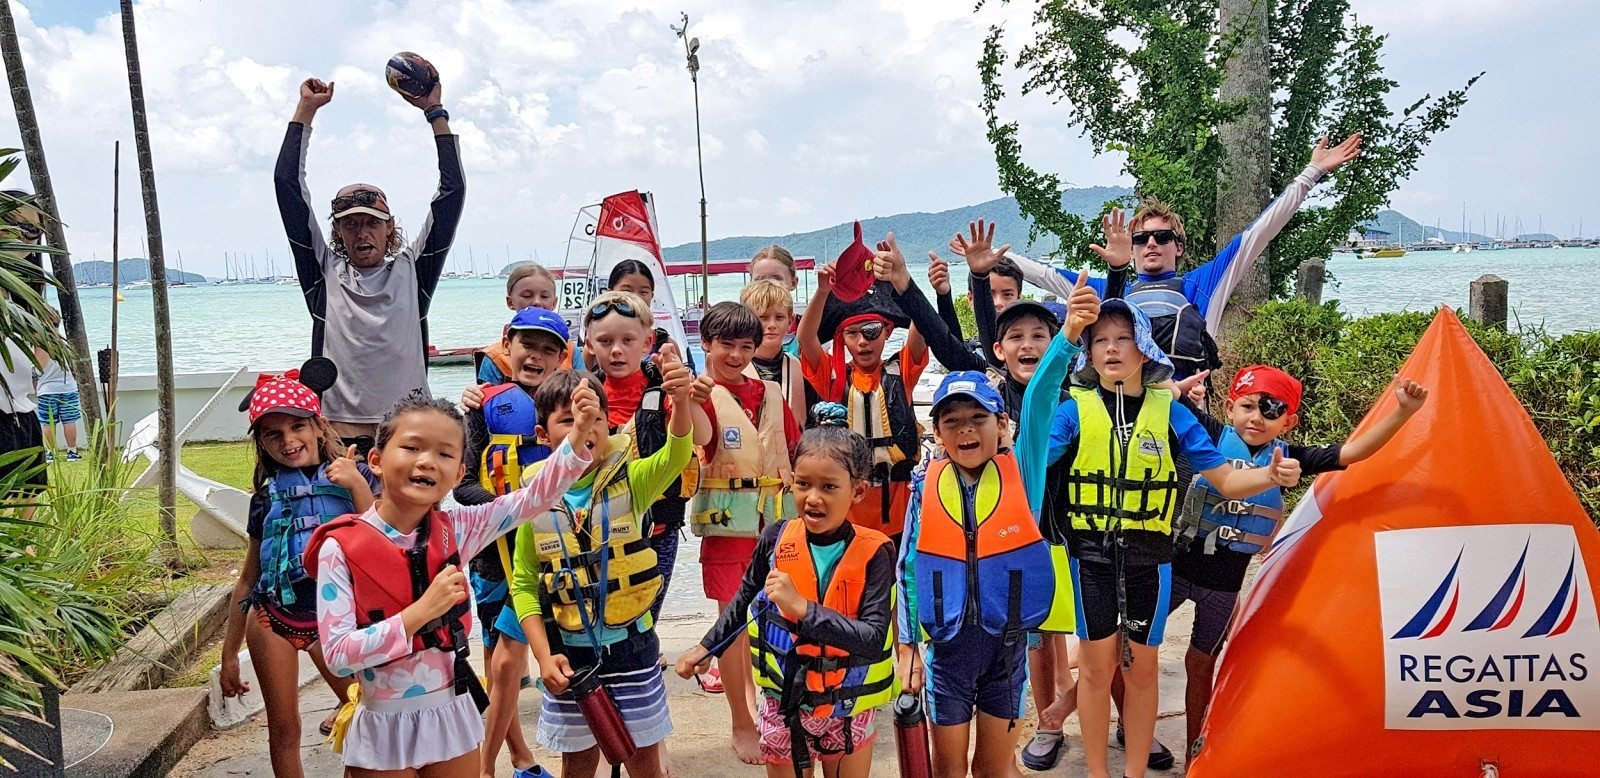 Phuket Yacht Club getting kids started in sailing | The Thaiger